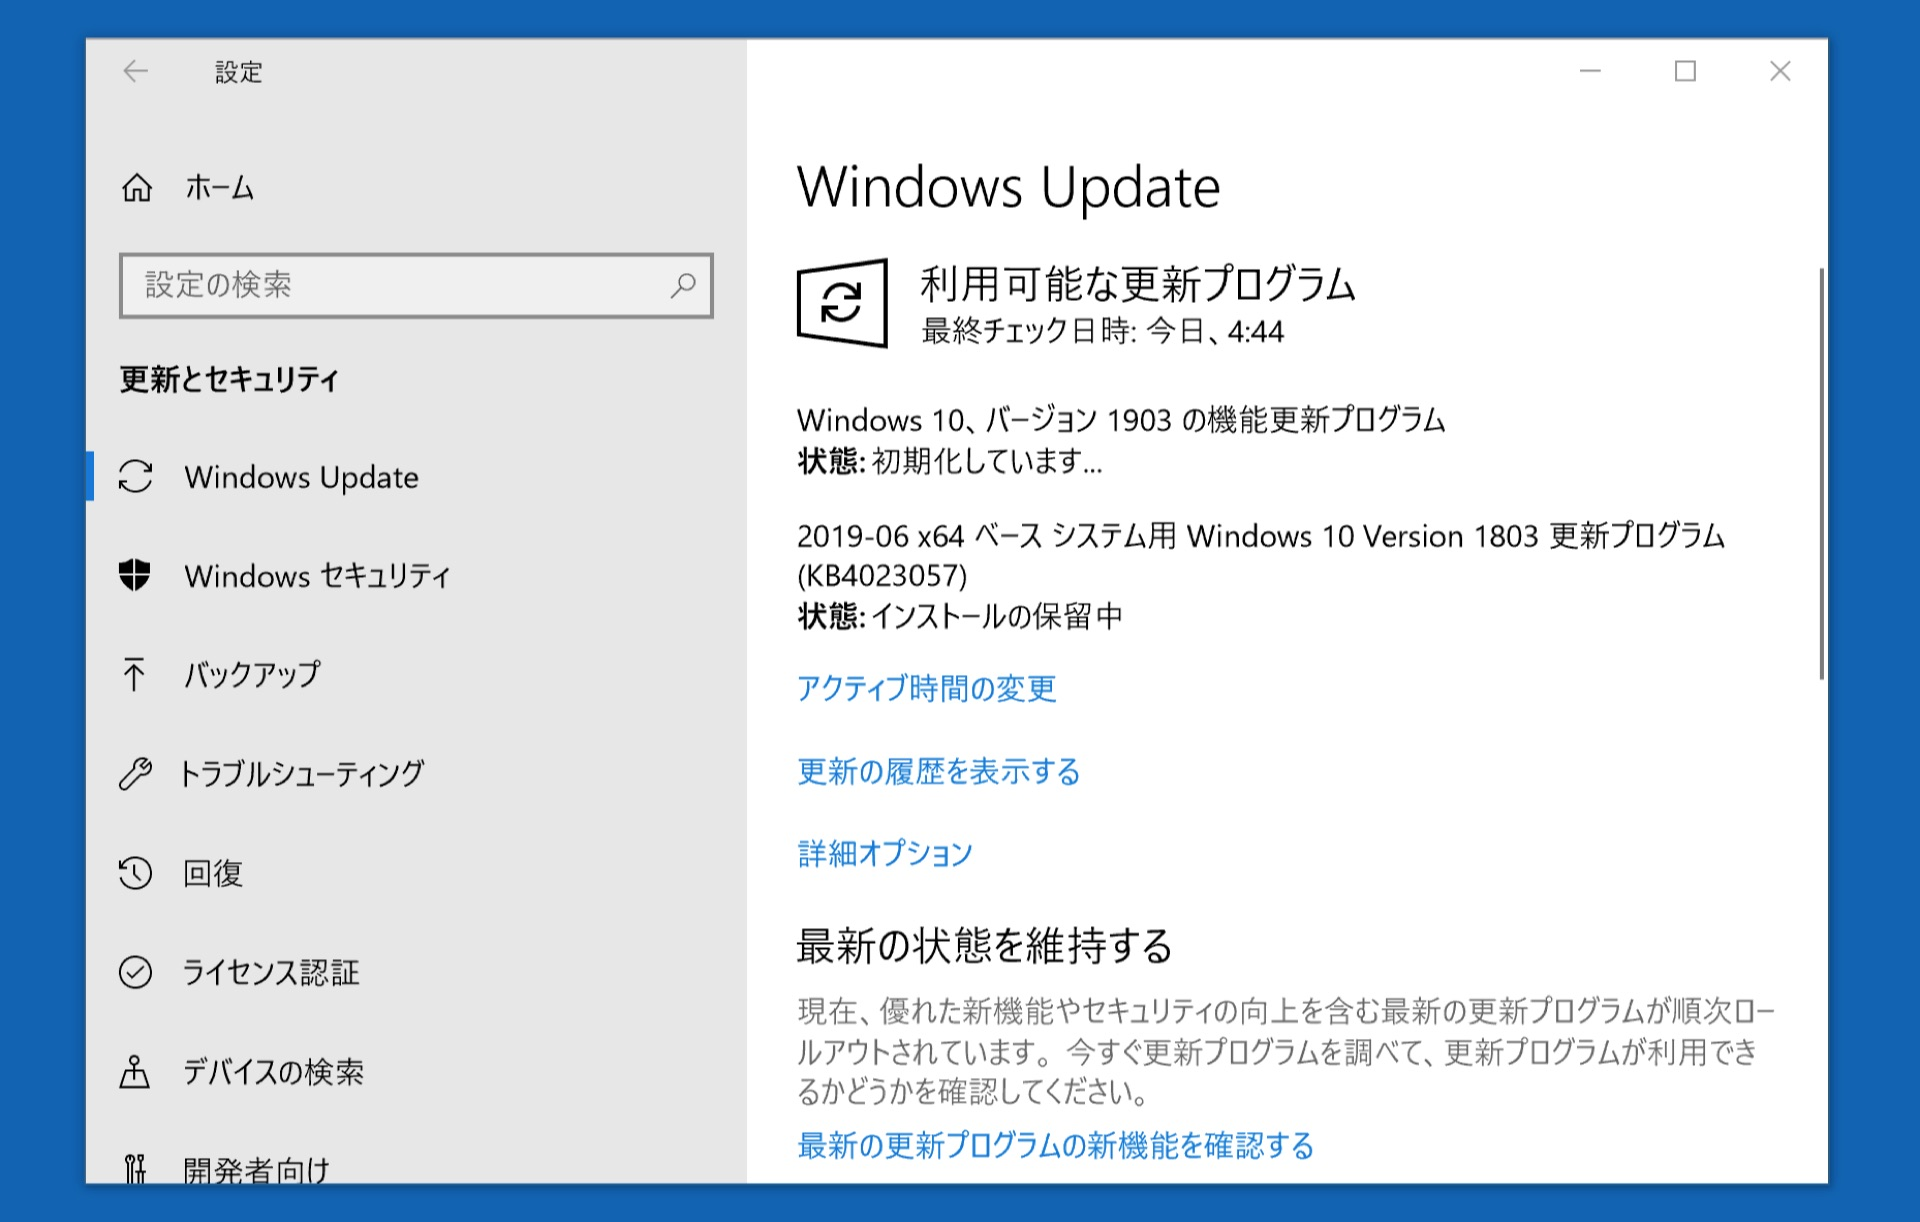 Windows 10, version 1903